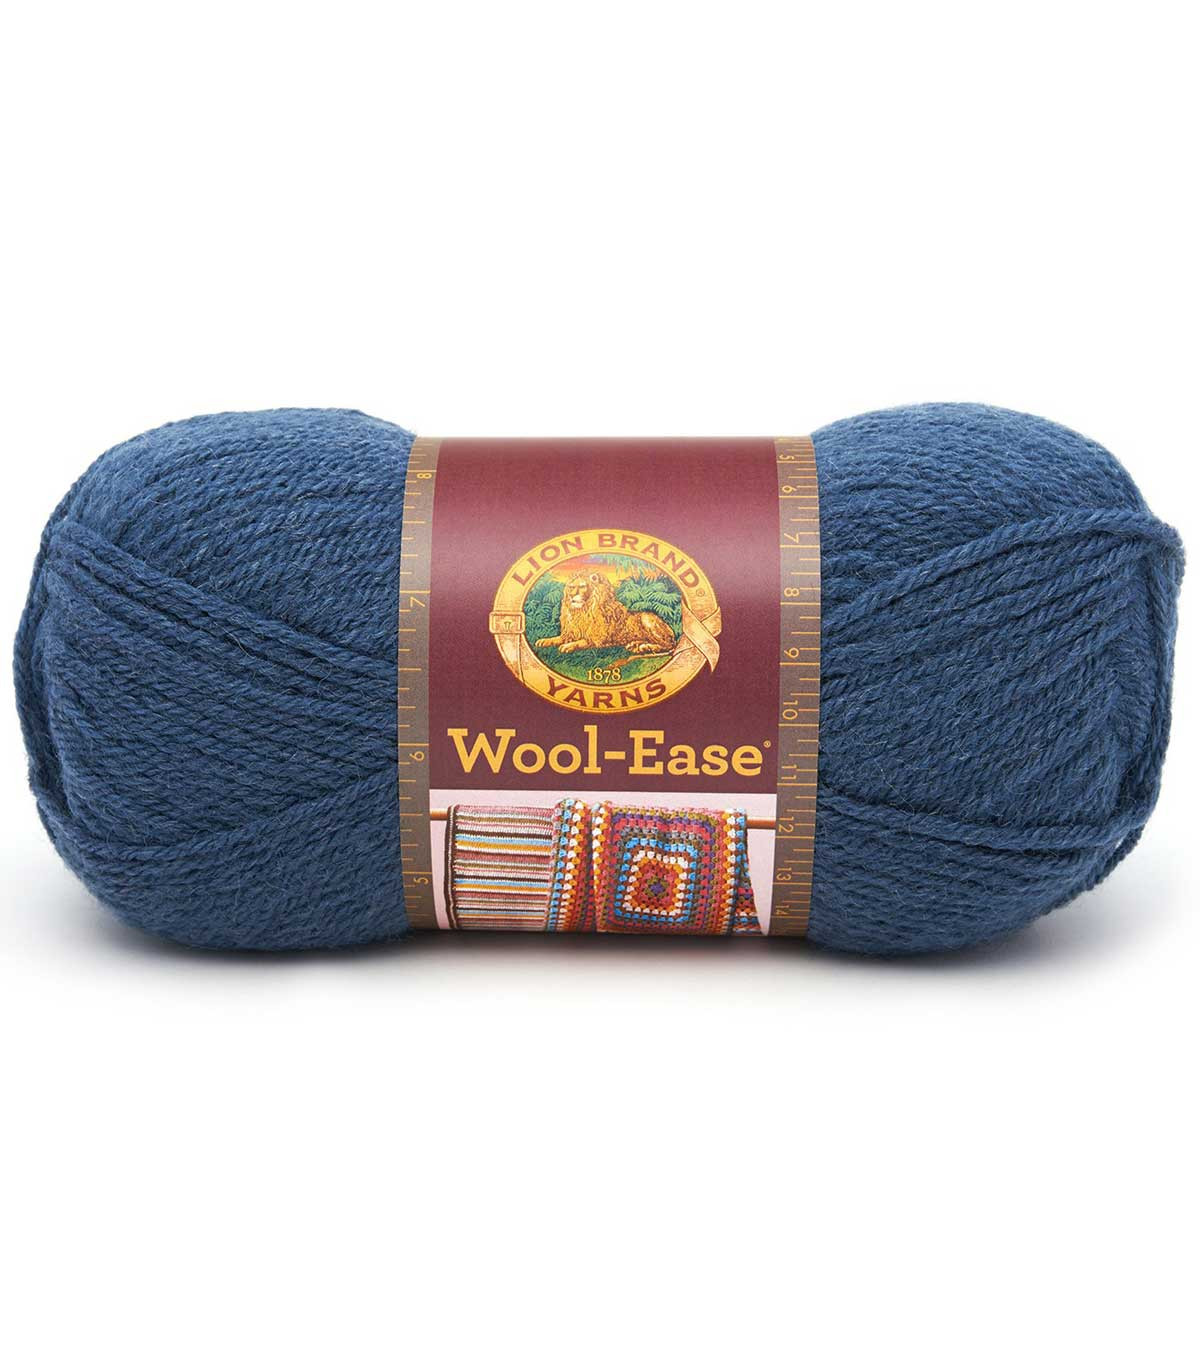 New Lion Brand Wool Ease Yarn Wool Ease Of Charming 46 Pics Wool Ease